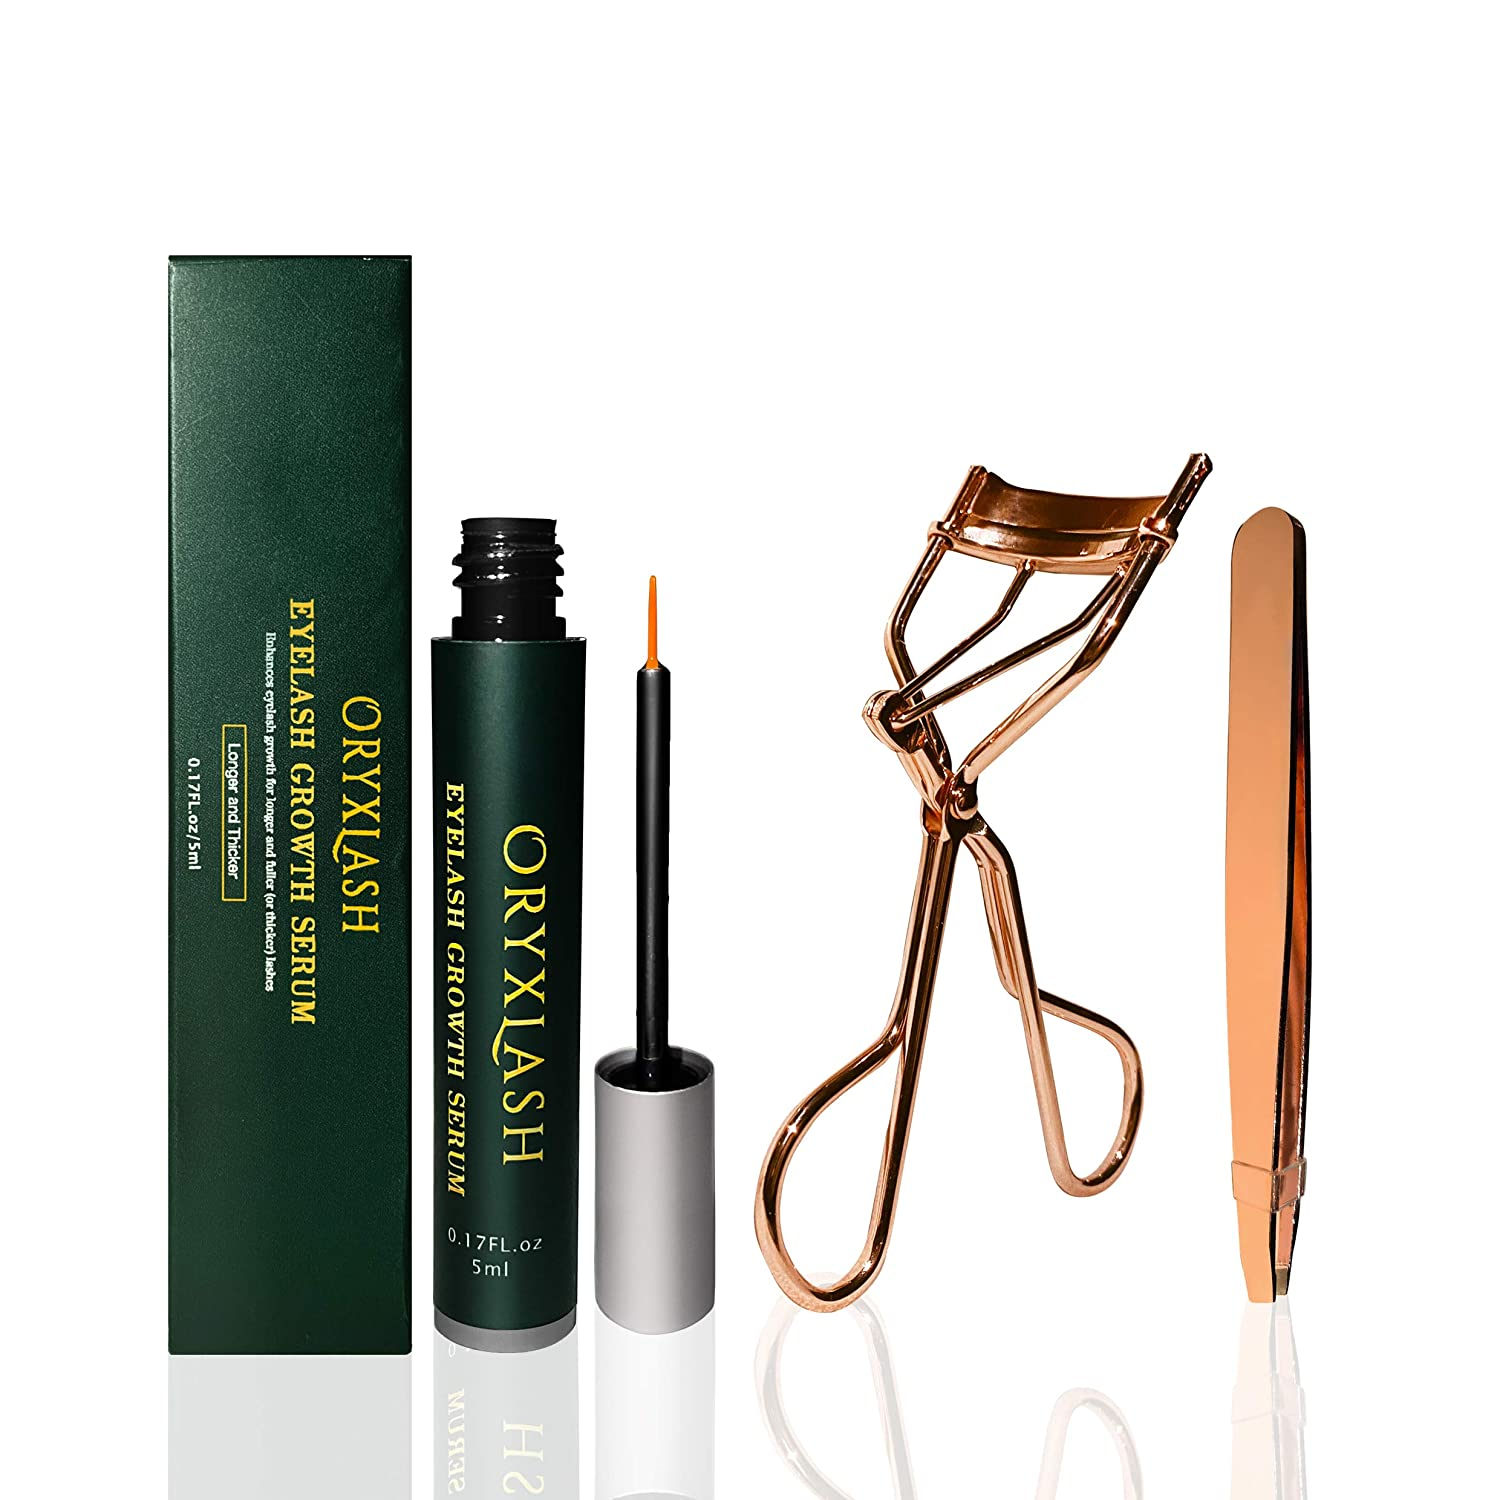 [ORYXLASH] Eyelash growth Serum 5ml with Lash Curler and Eyebrow Tweezers,Natural Plant Peptides and Nourishing Botanicals,Promote longer Hair,Thicker Hair and Reduce Dry Brittleness